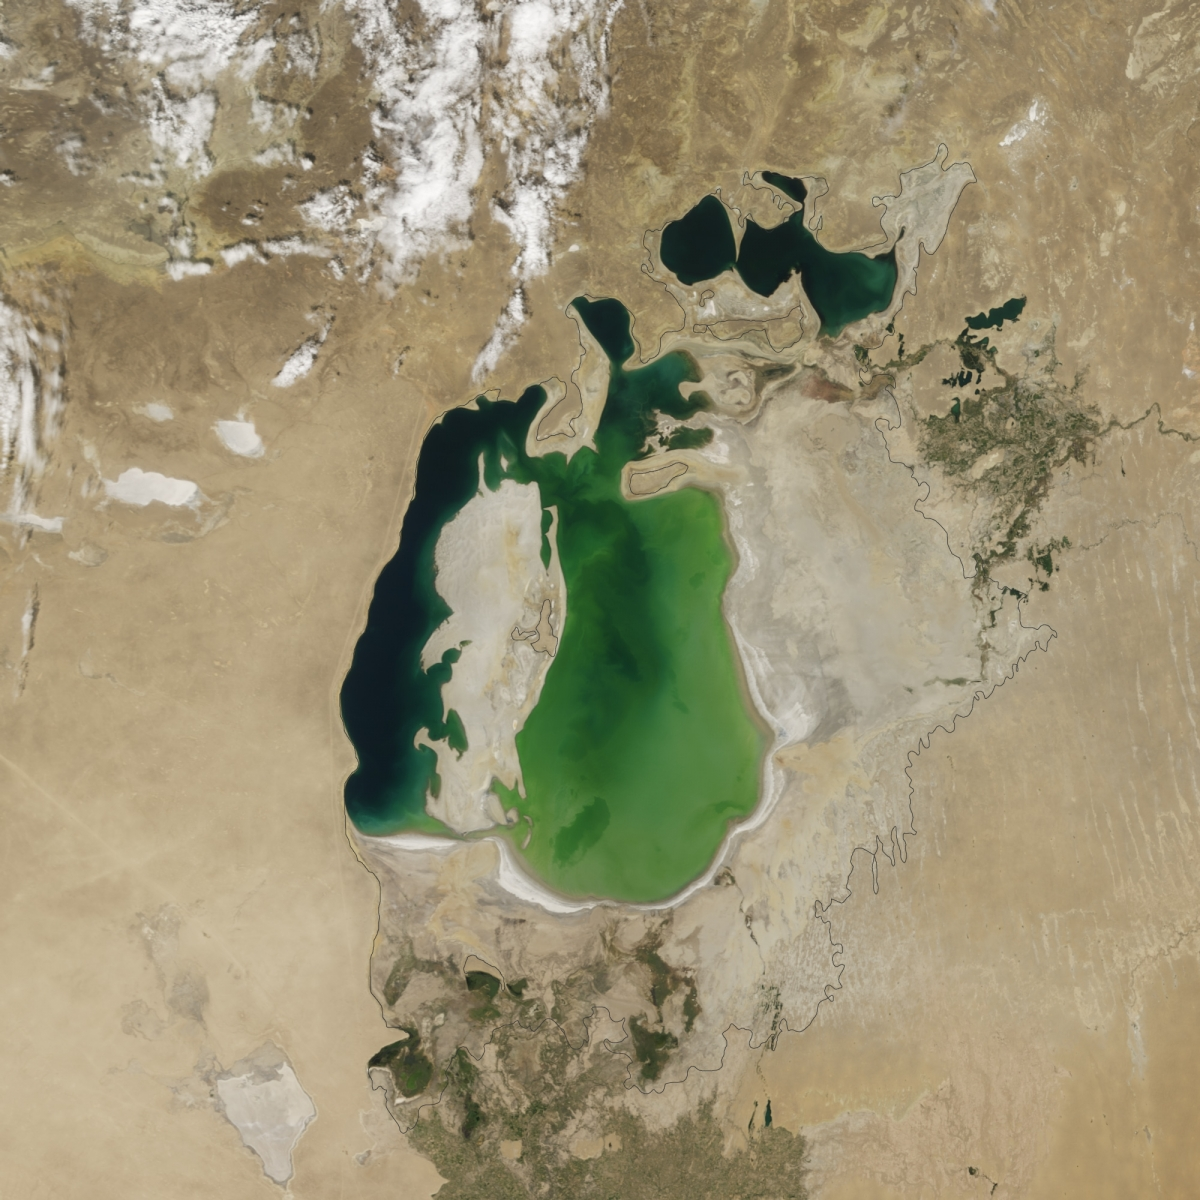 problems of aral sea essay A conference looks likely to enliven debate on both the aral sea s fate and the need for interventions on environmental problems that are causing international problems for health, ecology and vast pollution.